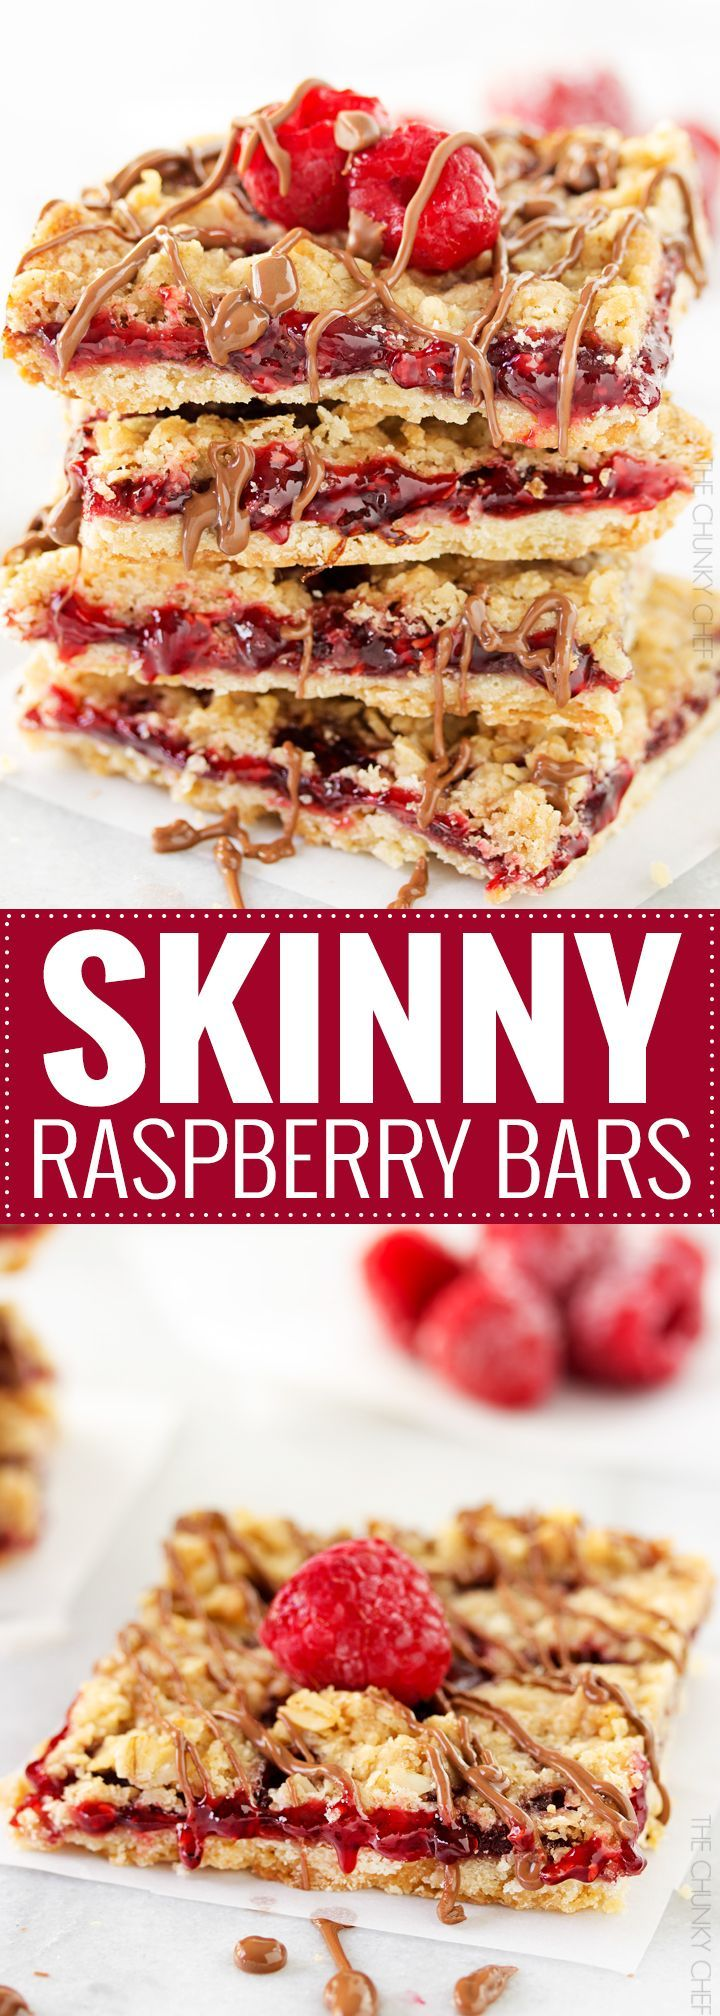 Skinny Raspberry Shortbread Bars | These buttery and sweet raspberry bars have under 200 calories per bar, making them the perfect lighter dessert! | http://thechunkychef.com